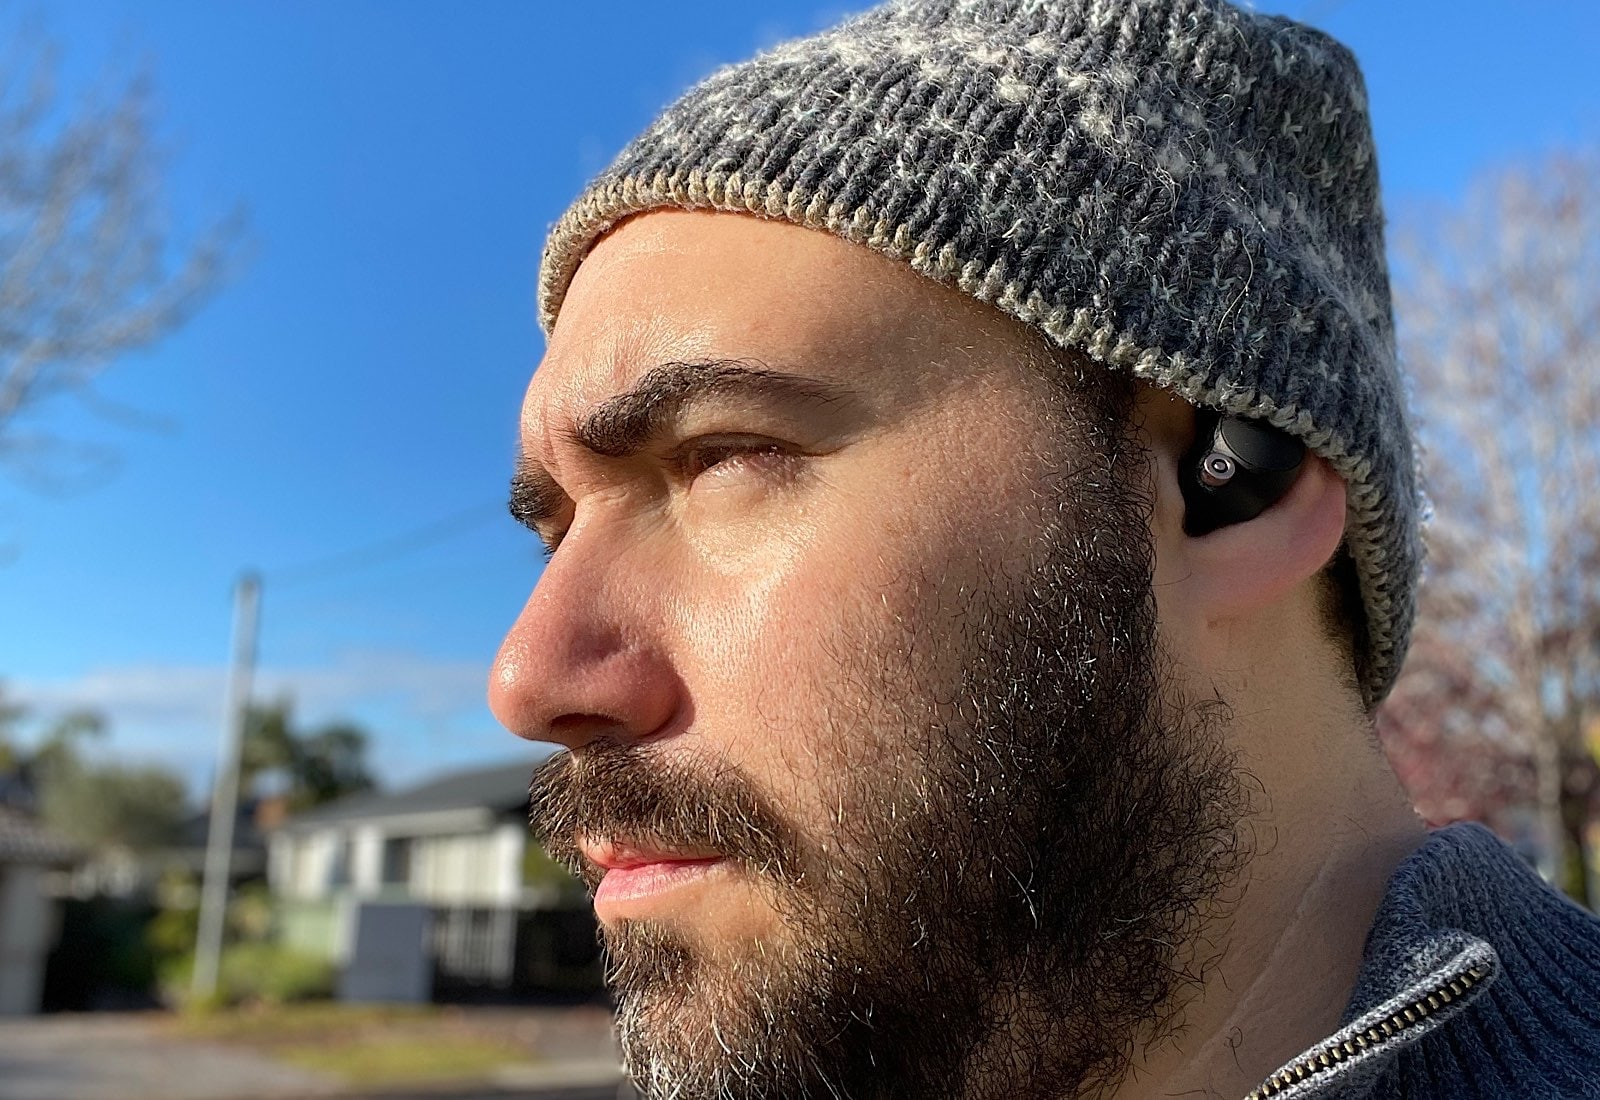 Wearing the Sony WF-1000XM4 on a cold Sydney day.